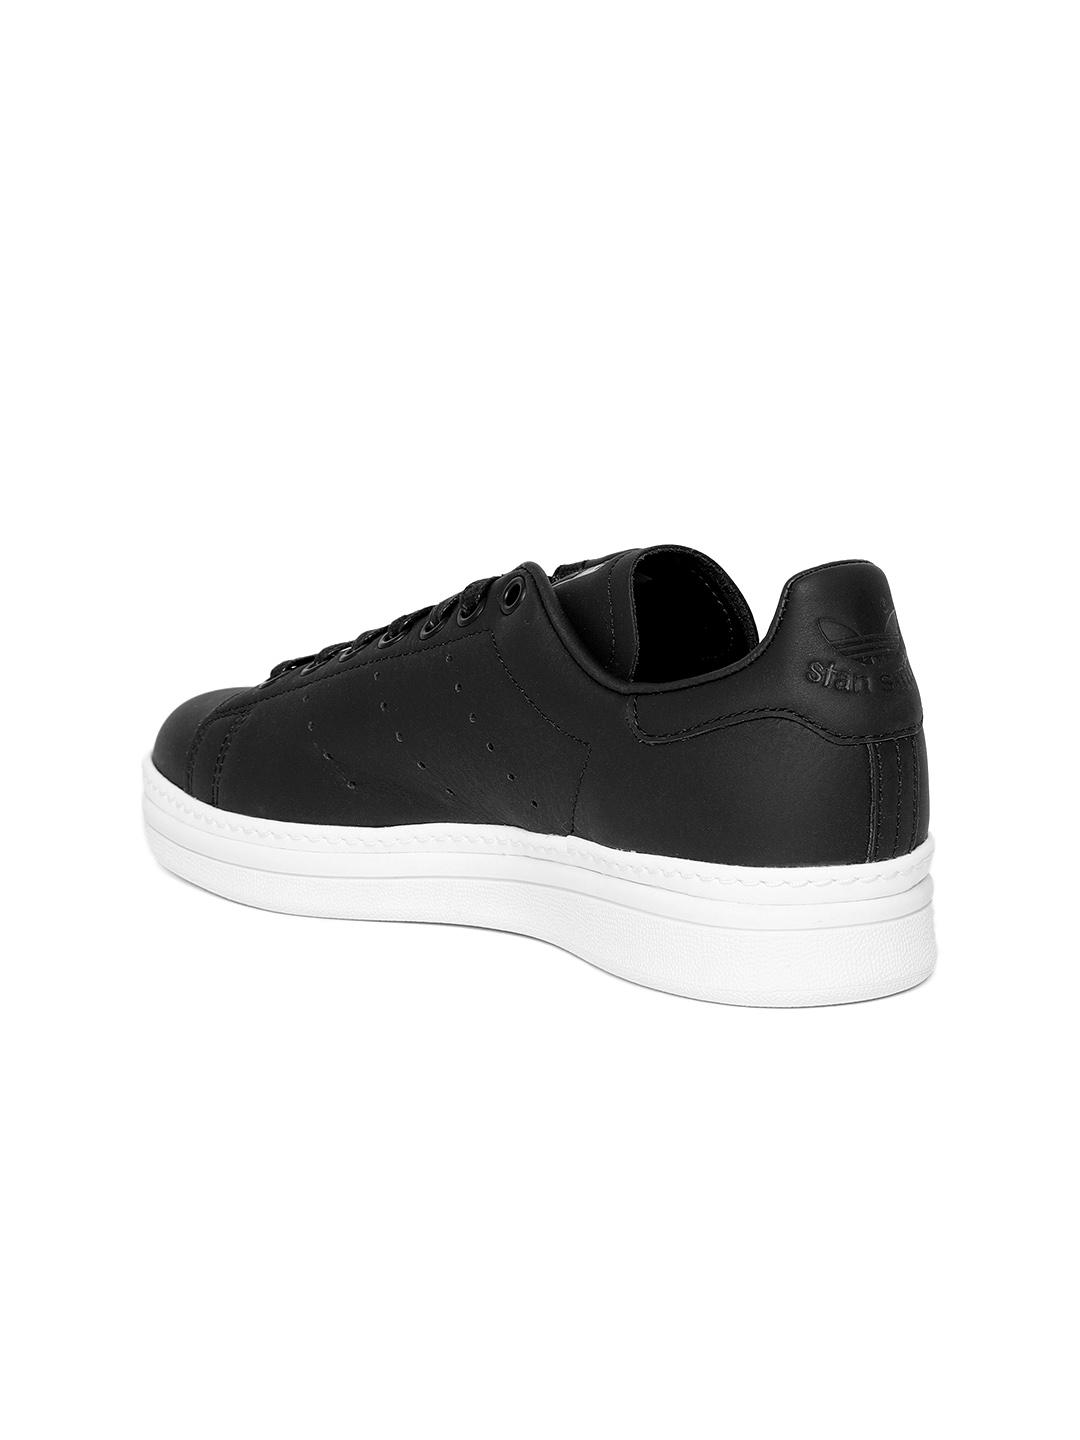 48cfd998d29695 Adidas Originals Women Black Stan Smith New Bold Leather Sneakers